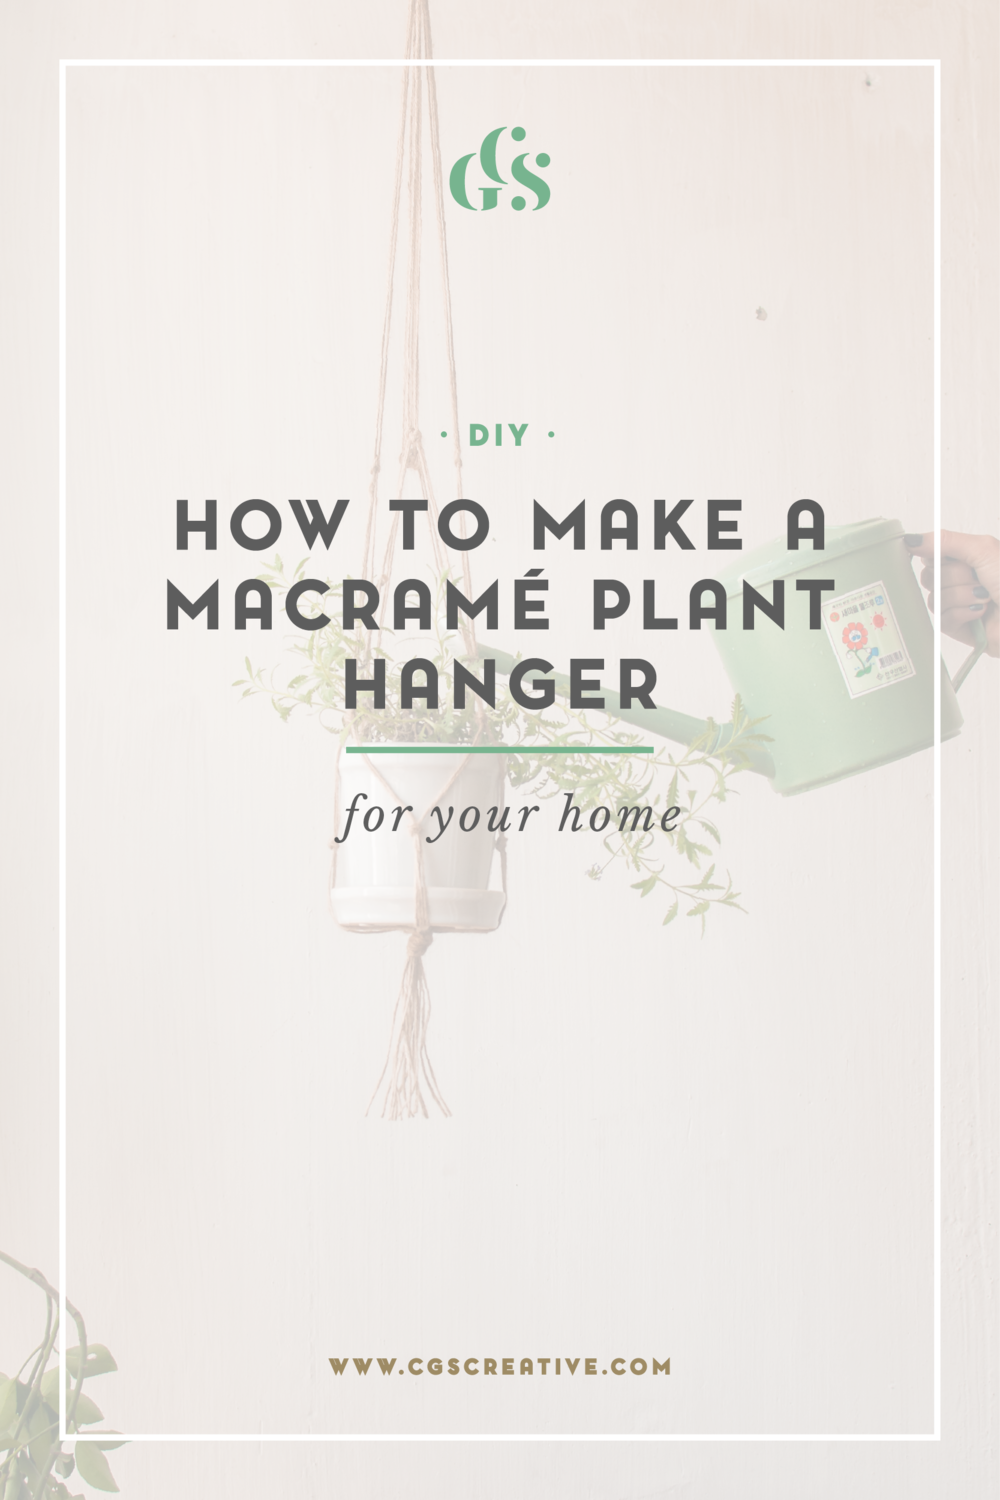 DIY How to make a Macamre Wall Plant Hanger_Artboard 3.png